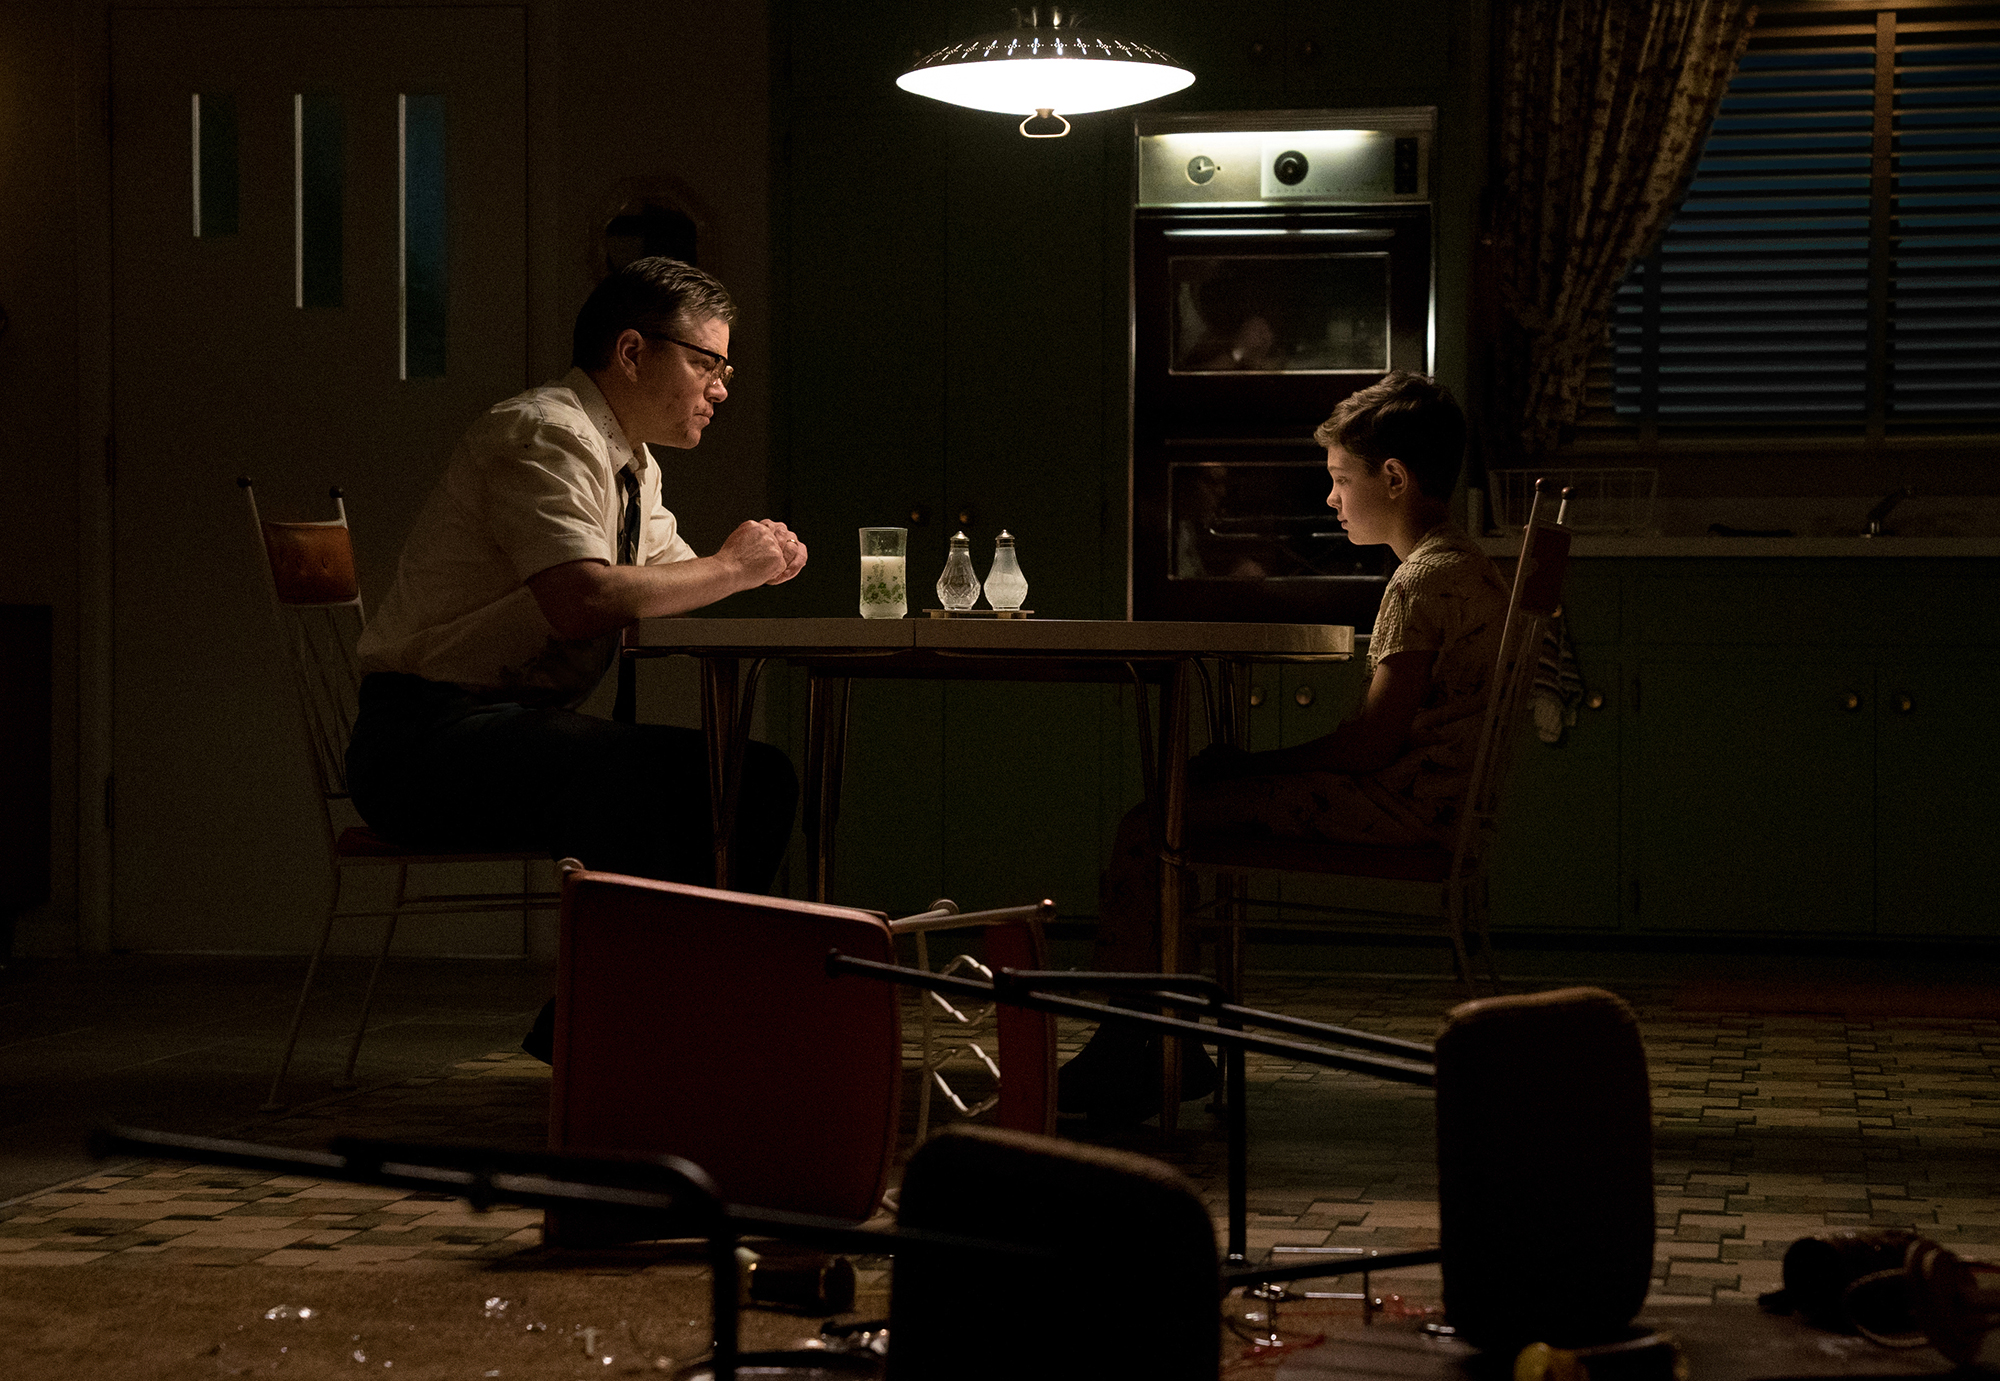 Left-to-right-Matt-Damon-as-Gardner-and-Noah-Jupe-as-Nicky-in-SUBURBICON-from-Paramount-Pictures-and-Black-Bear-Pictures.